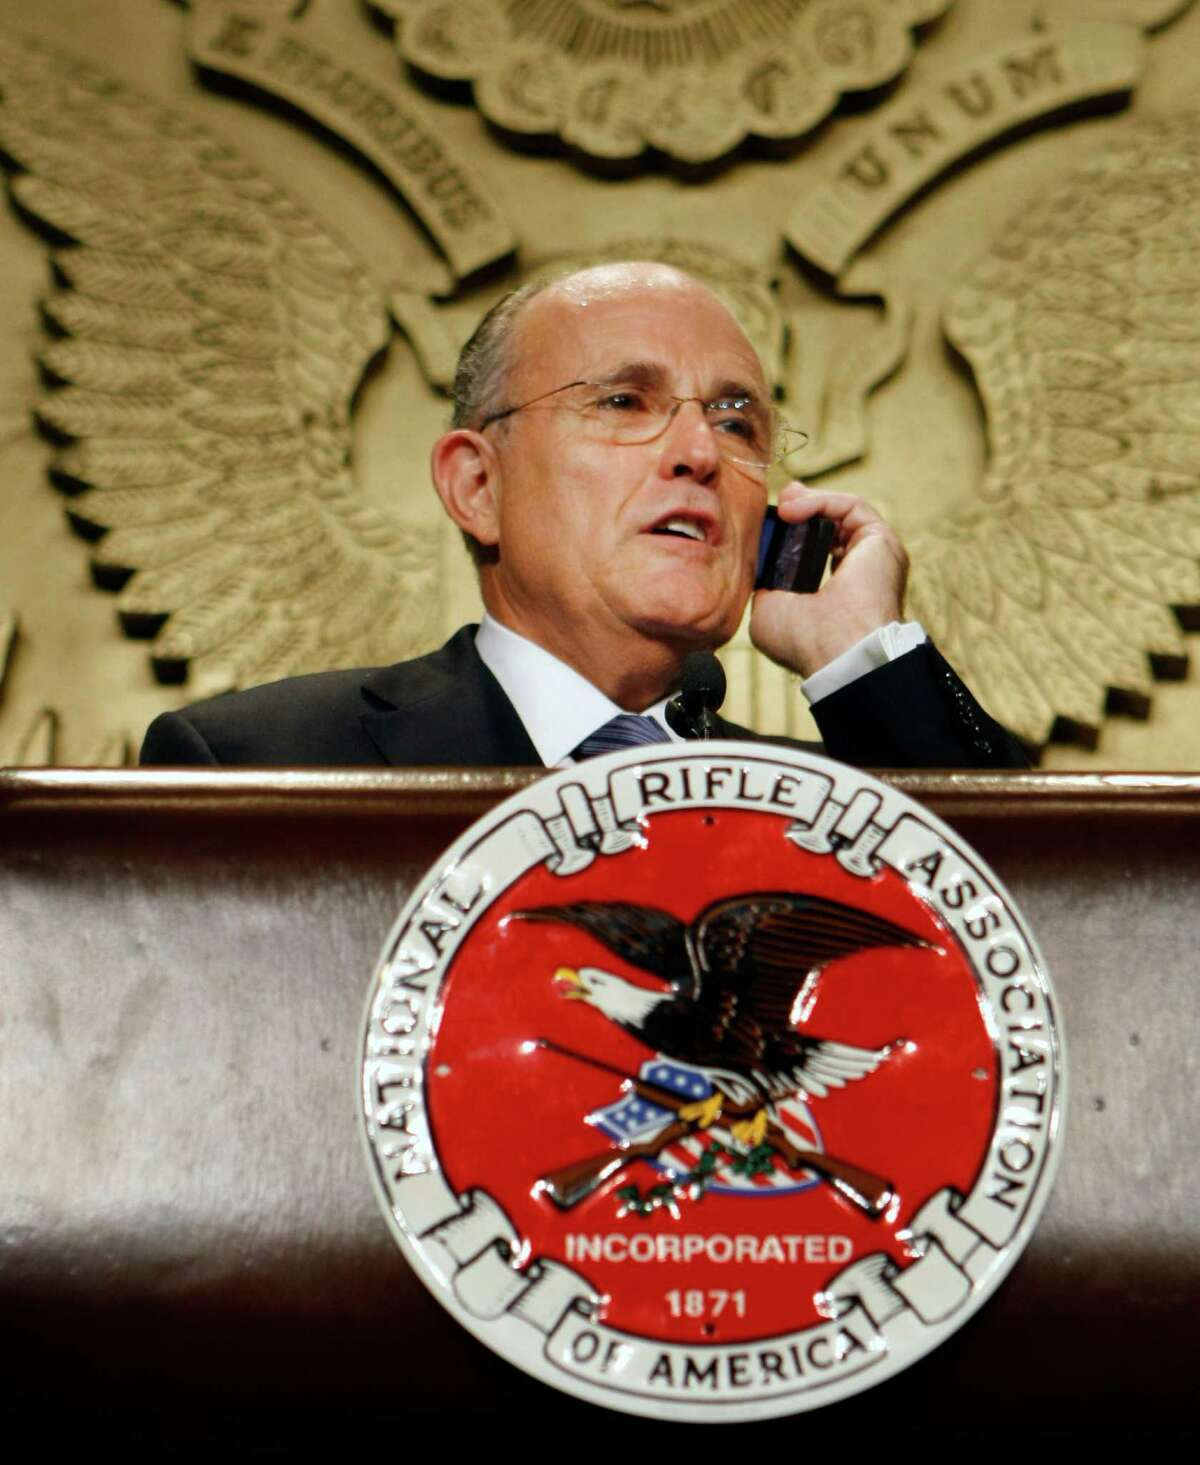 Former New York Mayor Rudy Giuliani takes a cell phone call, he said was from his wife, while delivering remarks to the National Rifle Association in Washington, Friday, Sept. 21, 2007.